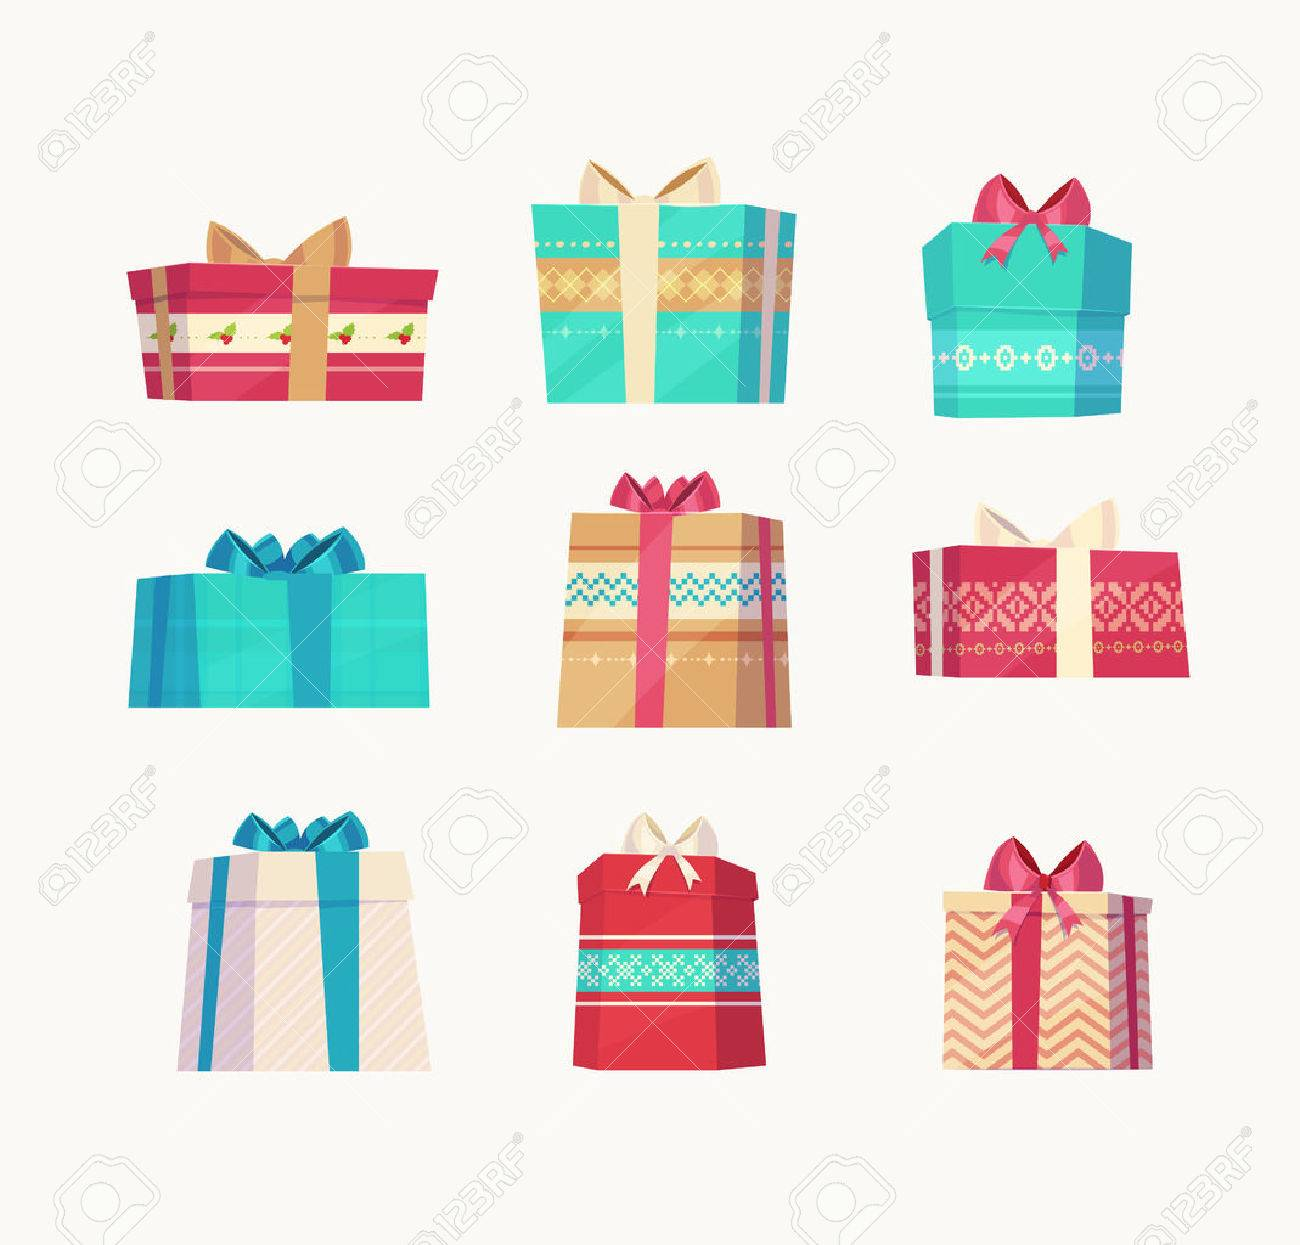 Christmas gifts set on white background. Christmas card poster banner. Vector illustration. - 47724466